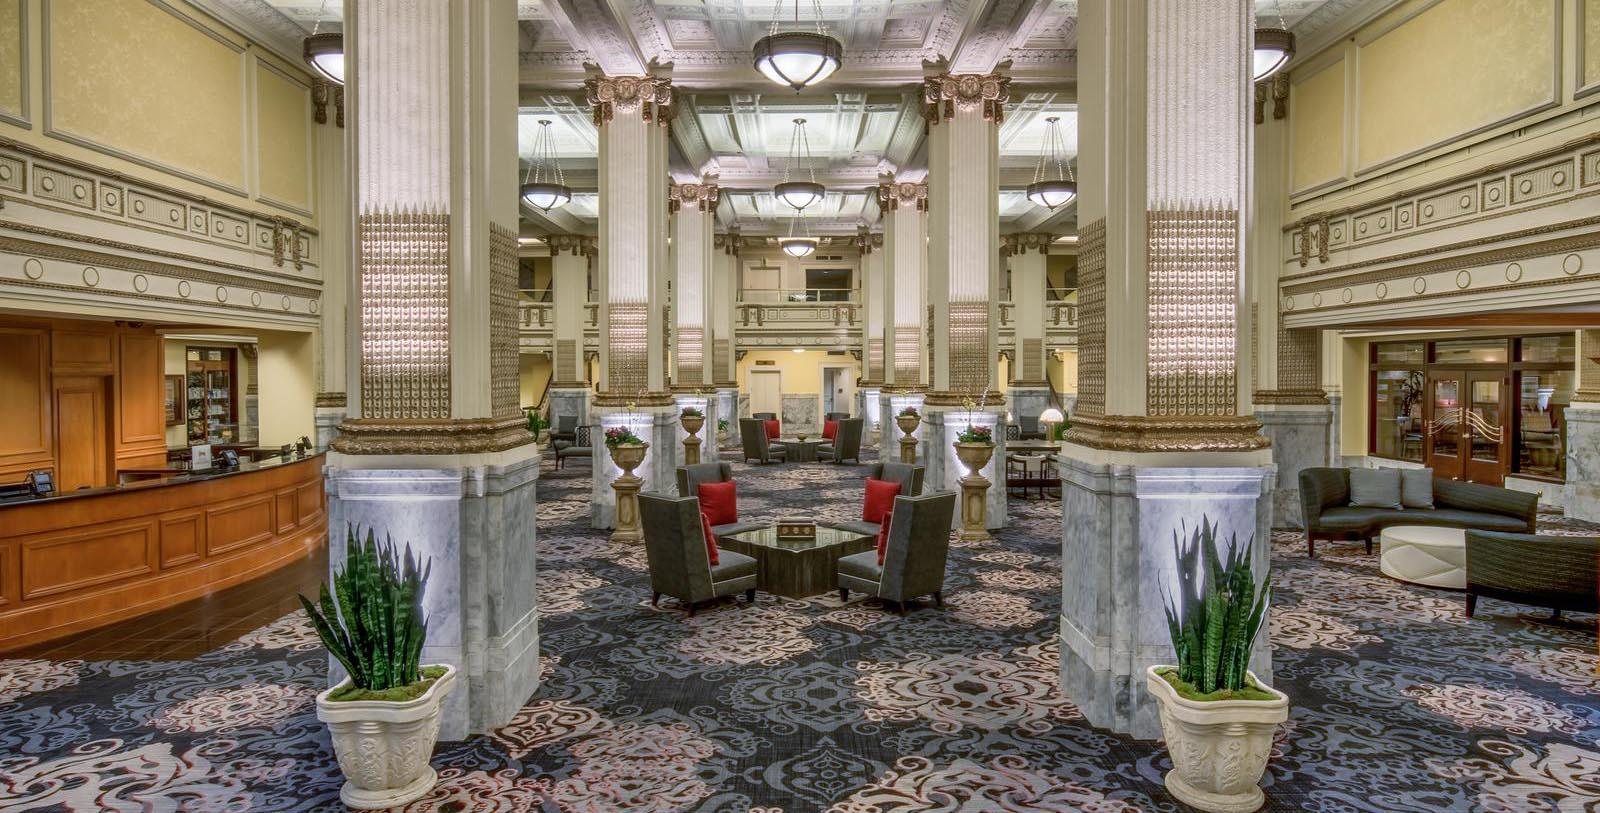 Image of lobby at Embassy Suites by Hilton Portland Downtown, 1912, Member of Historic Hotels of America, in Portland, Oregon, Overview